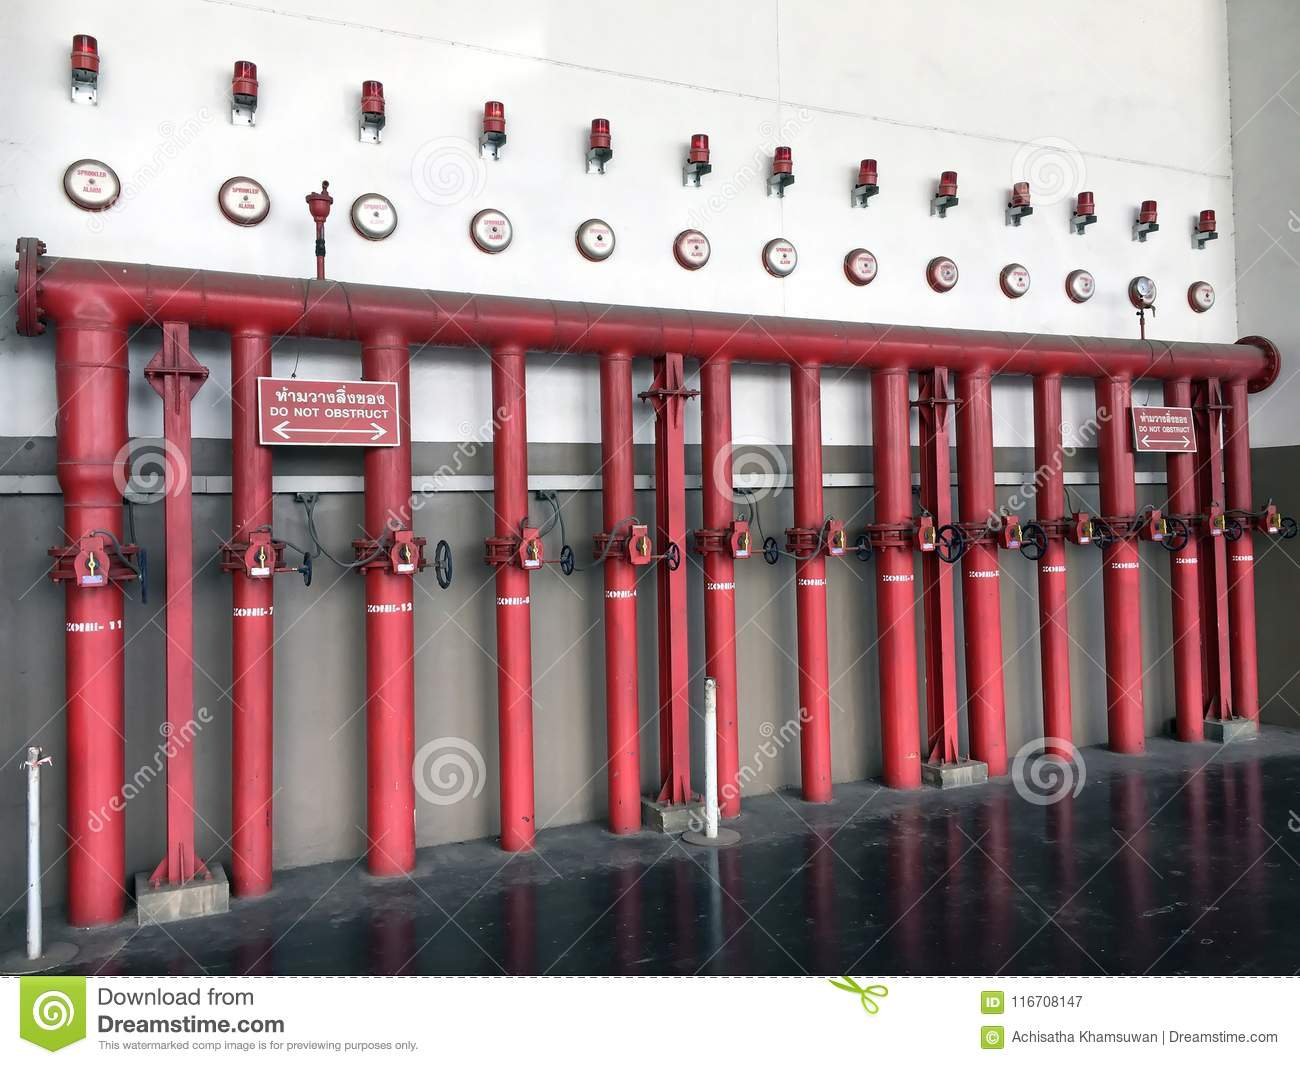 Fire hydrant system composed of red iron fire pipe, Switch for water, sprinkler alarm and fire alarm.